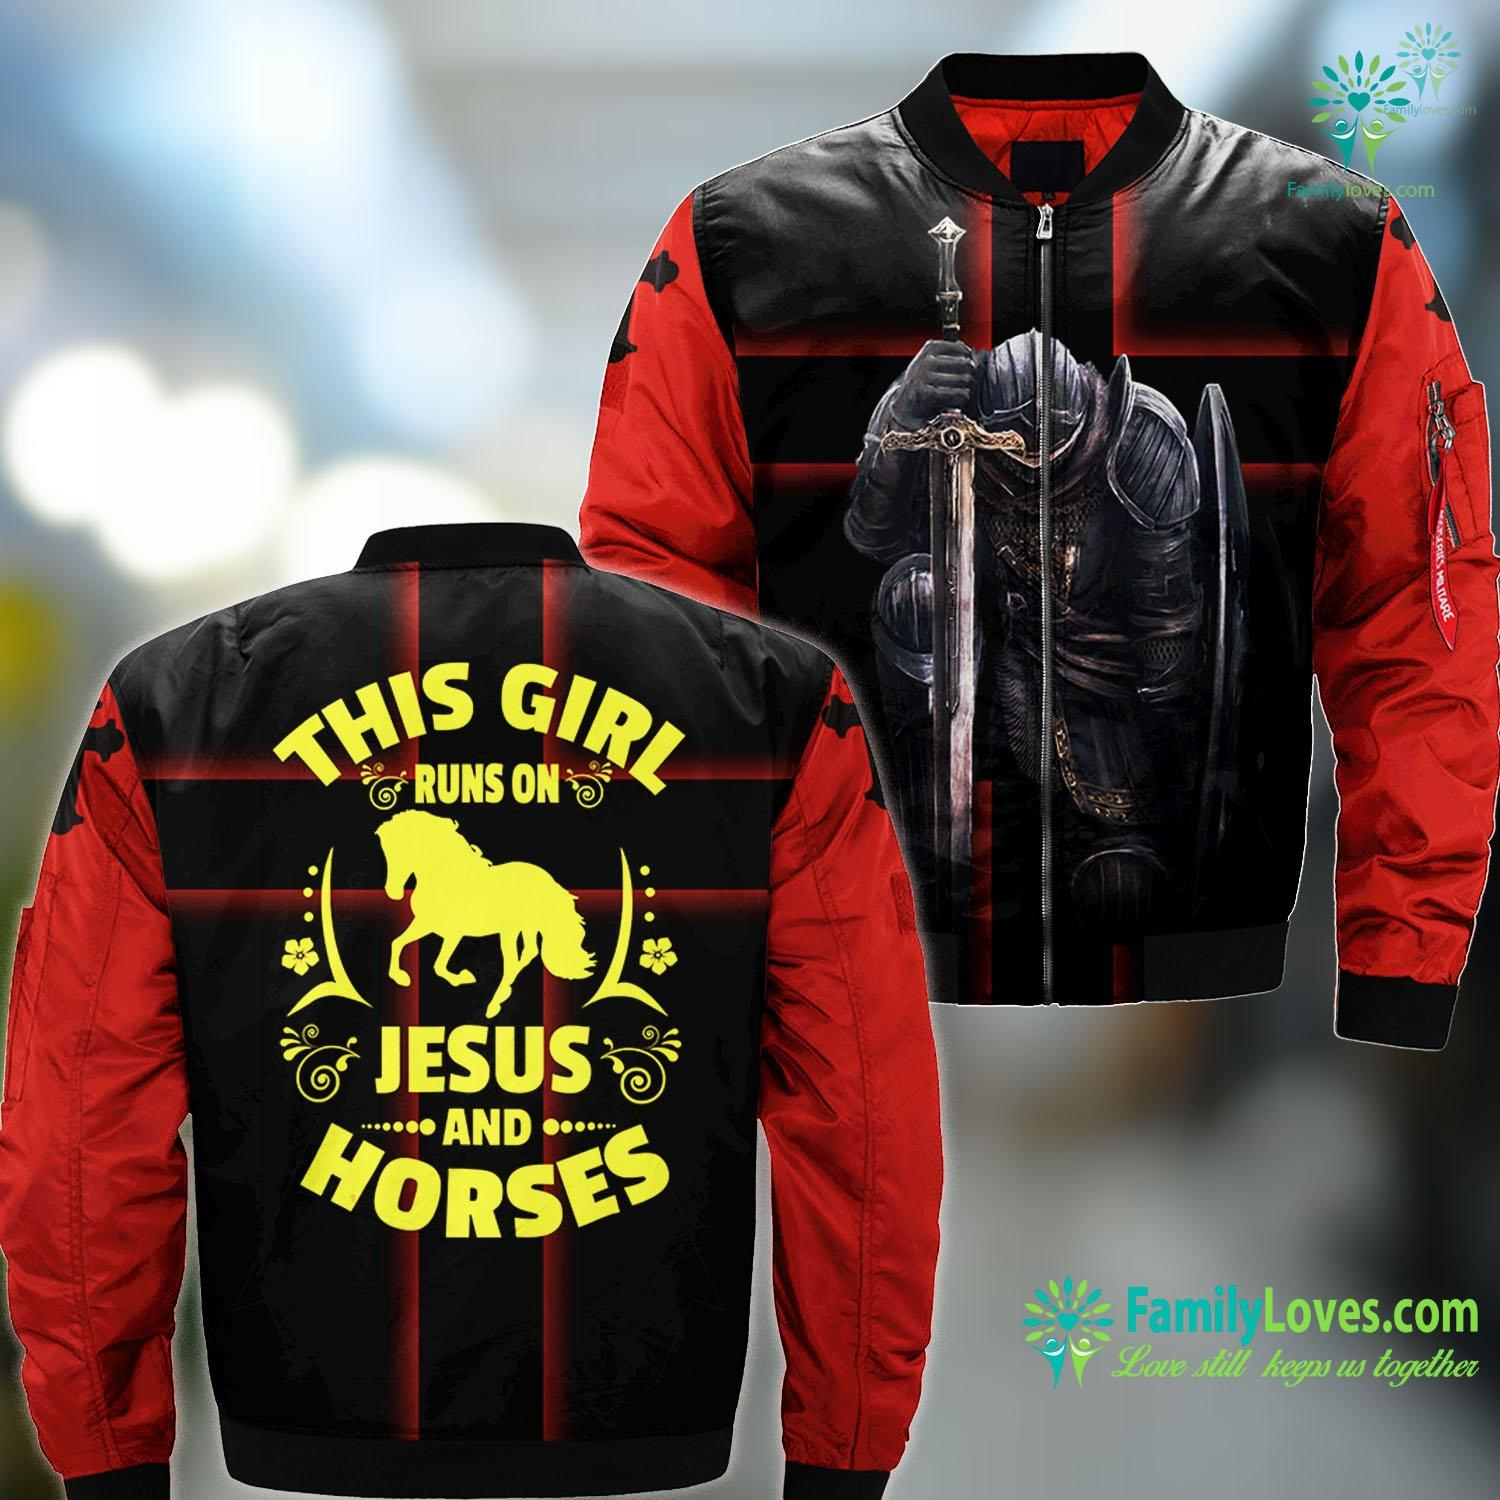 Garden Of Gethsemane This Girl Runs On Jesus And Horses Horse Riding Tee Jesus MA1 Bomber Jacket All Over Print Familyloves.com